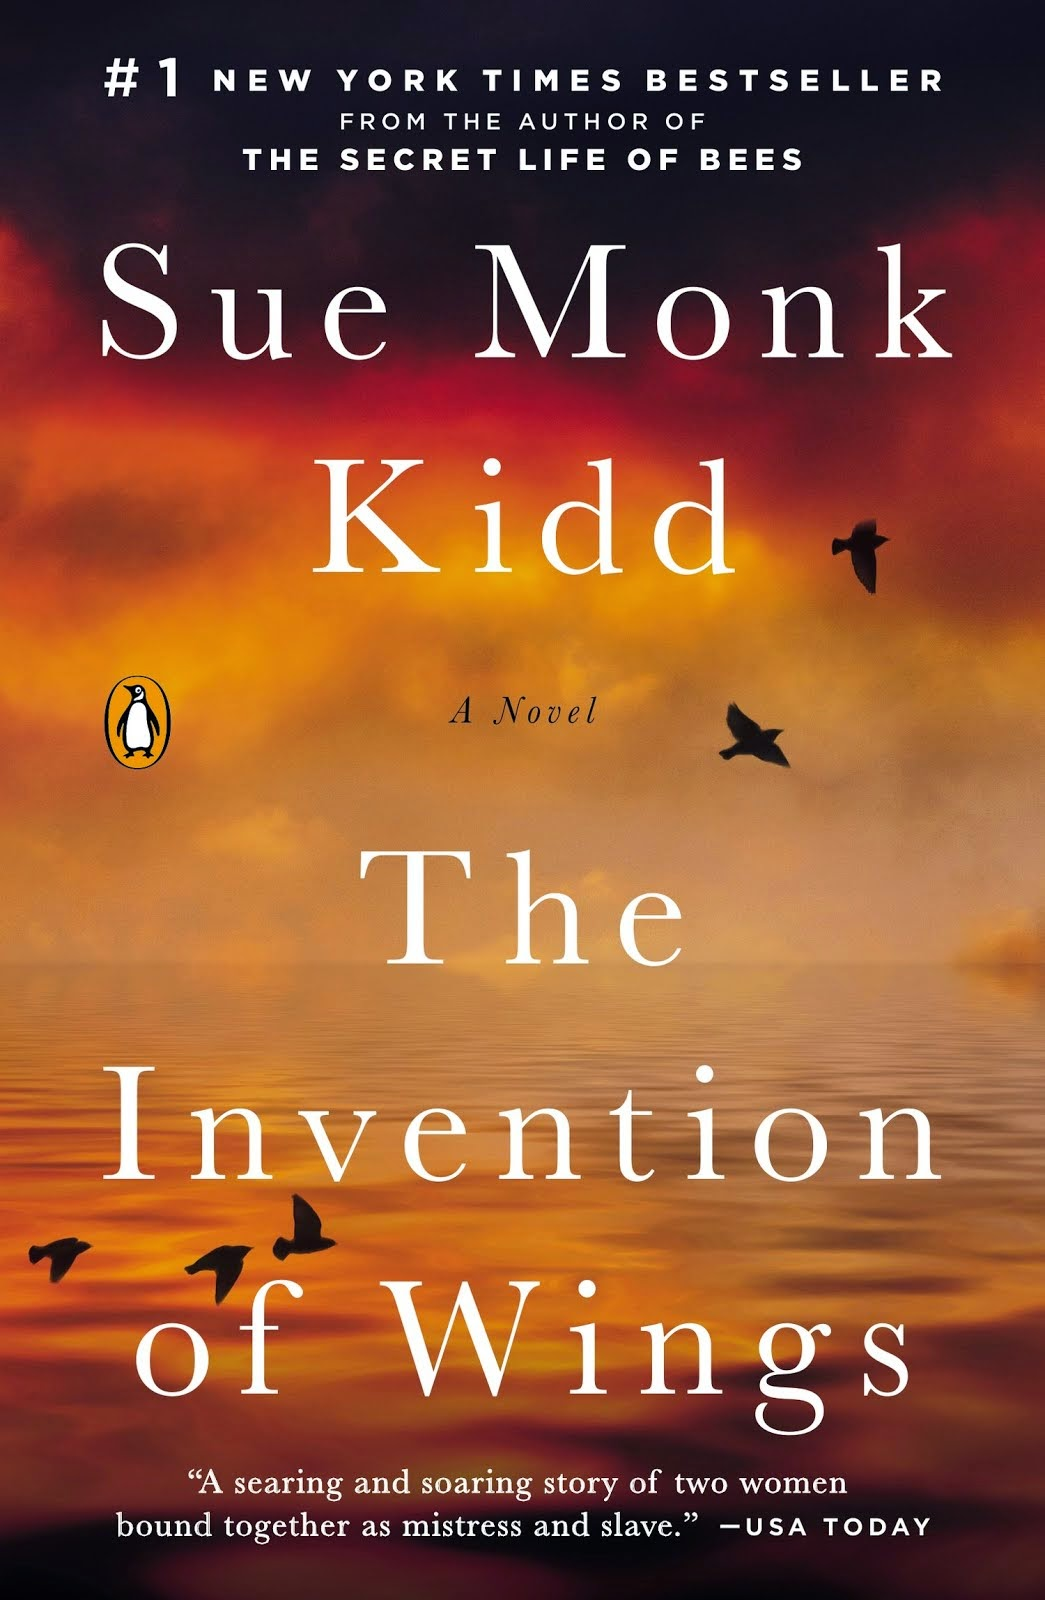 Giveaway - The Invention of Wings